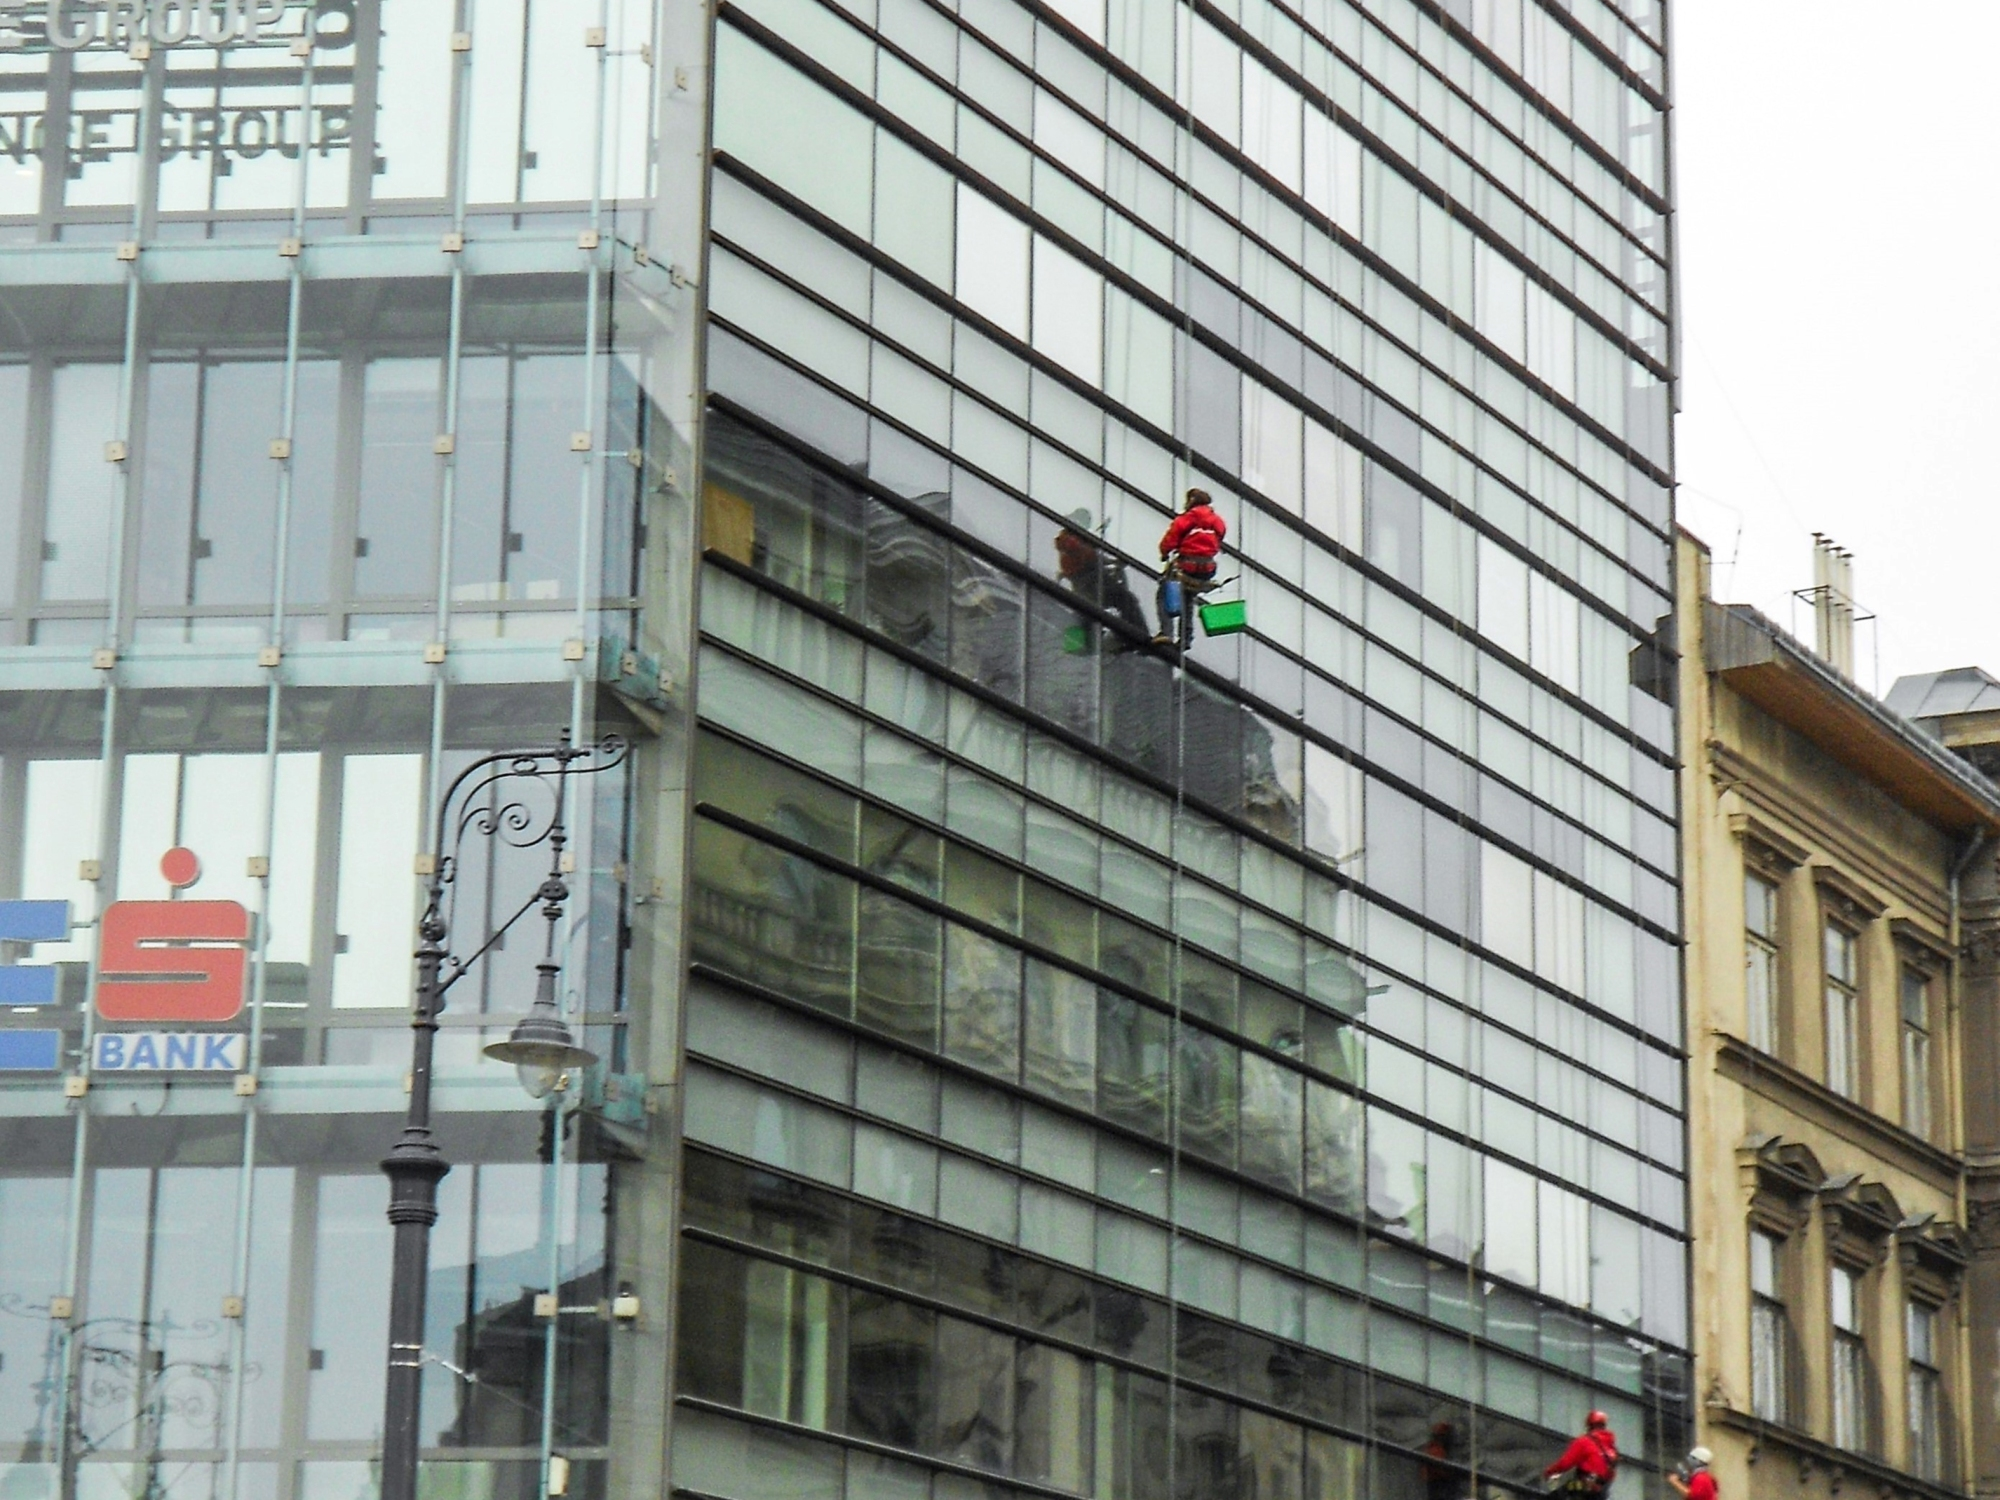 a photo of a window washers at work in budapest, hungary a photo by LensMomentsNS - Nichole Spates 2012